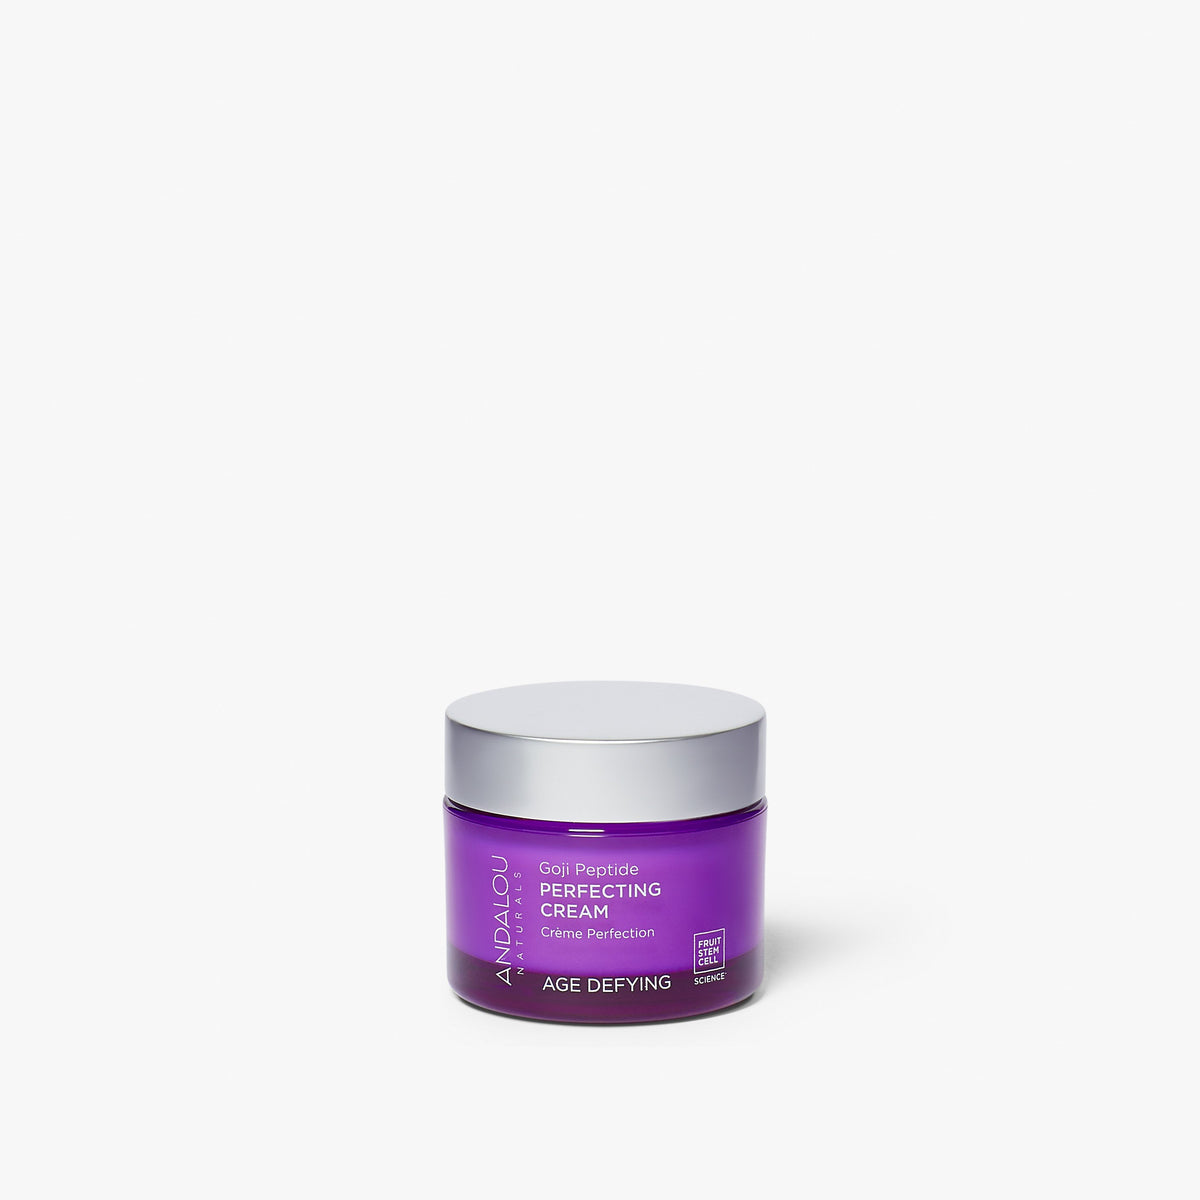 Andalou Naturals Age Defying Goji Peptide Perfecting Cream jar